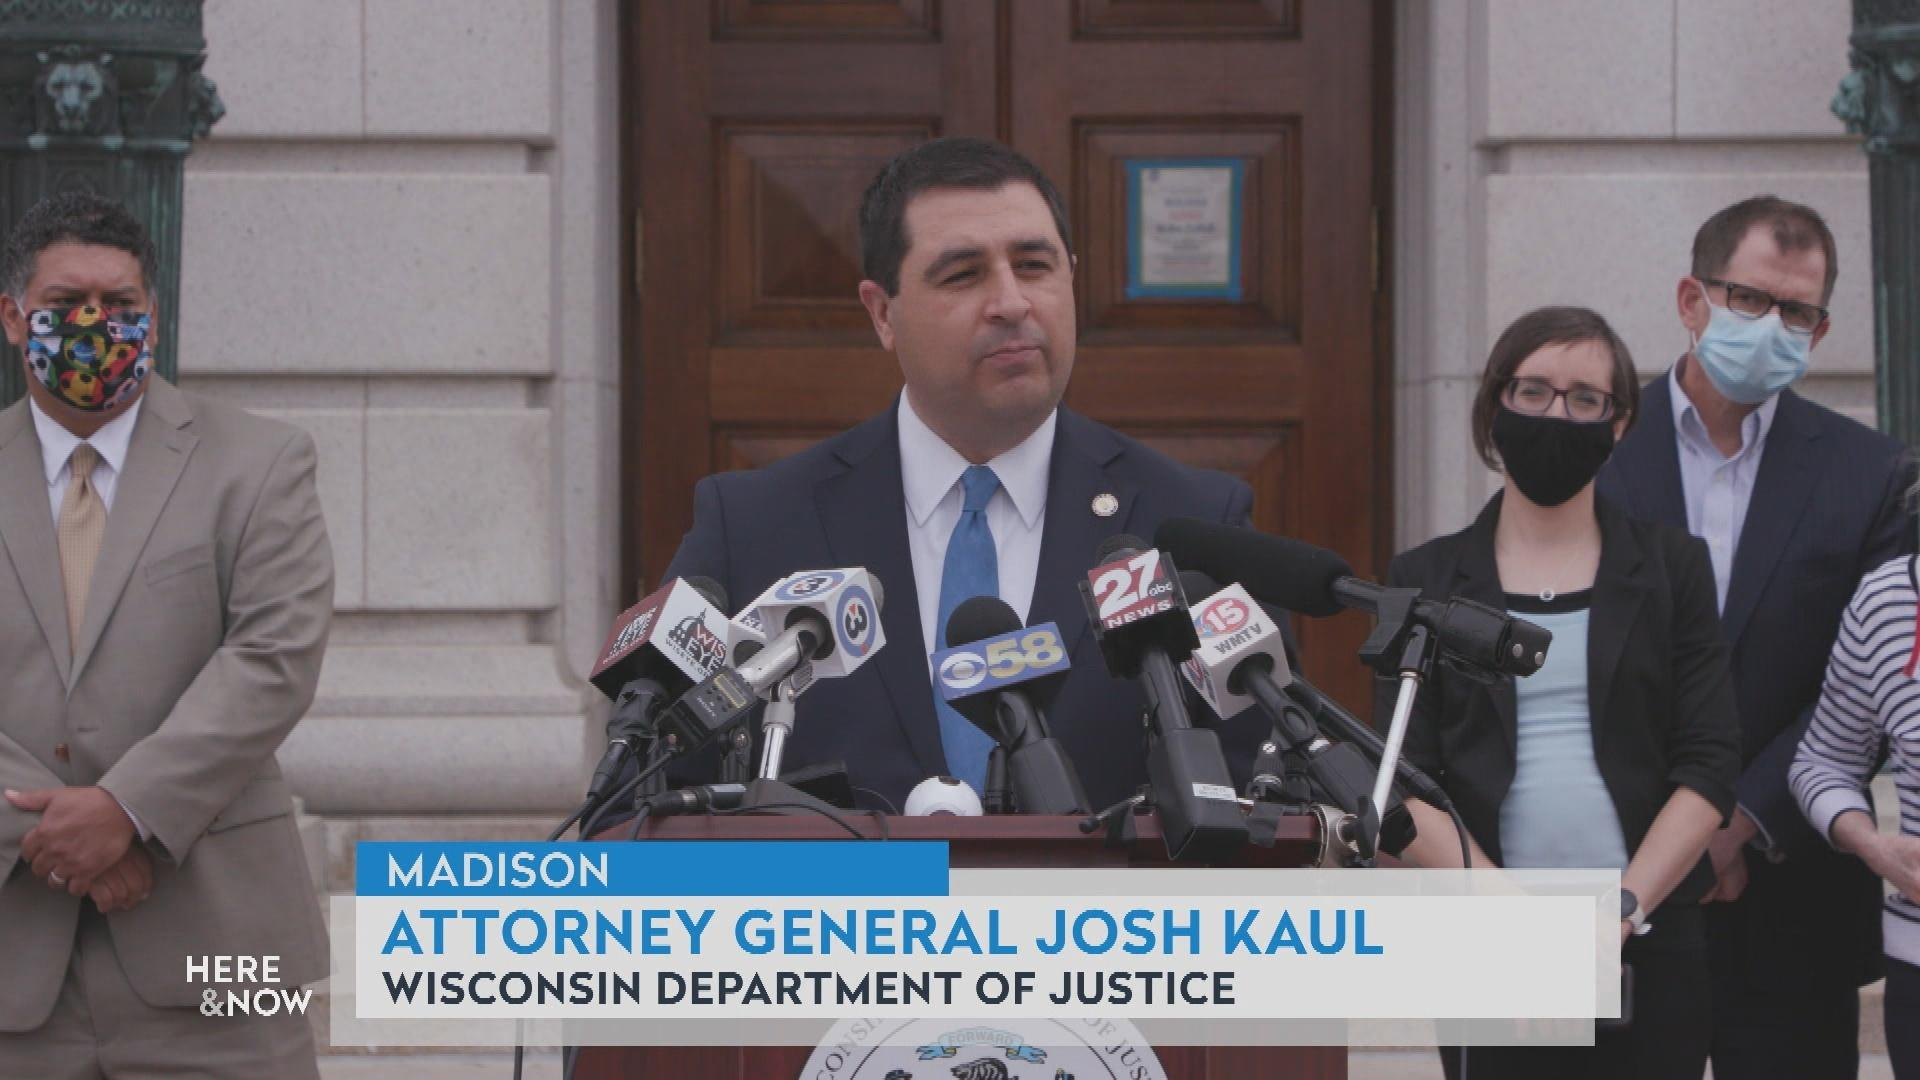 Attorney General Josh Kaul on Clergy Abuse in Wisconsin